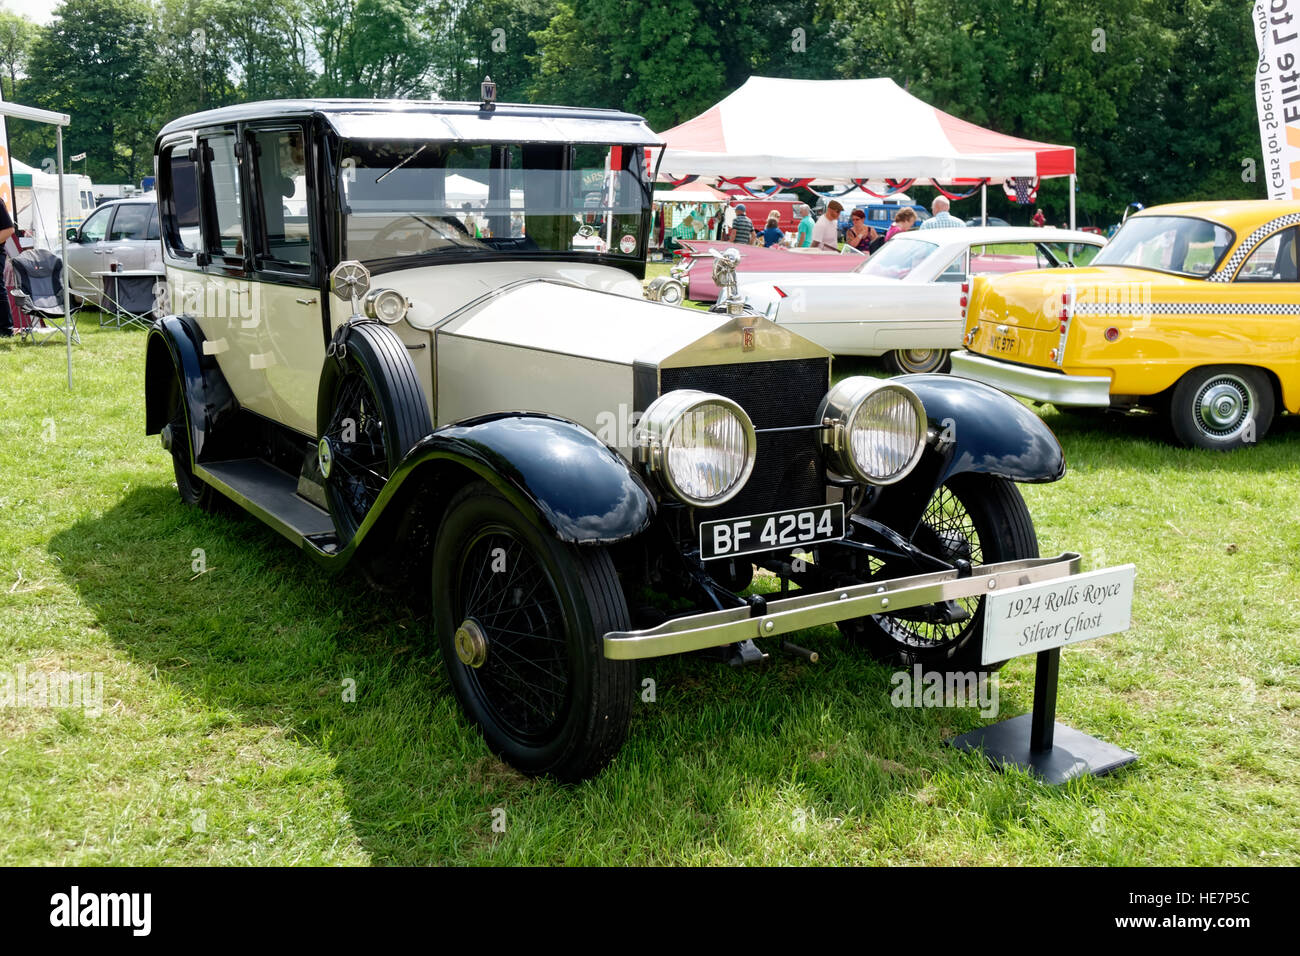 A 1924 Rolls Royce Silver Ghost at the 2014 Stockton Nostalgia Show, Wiltshire, United Kingdom. - Stock Image